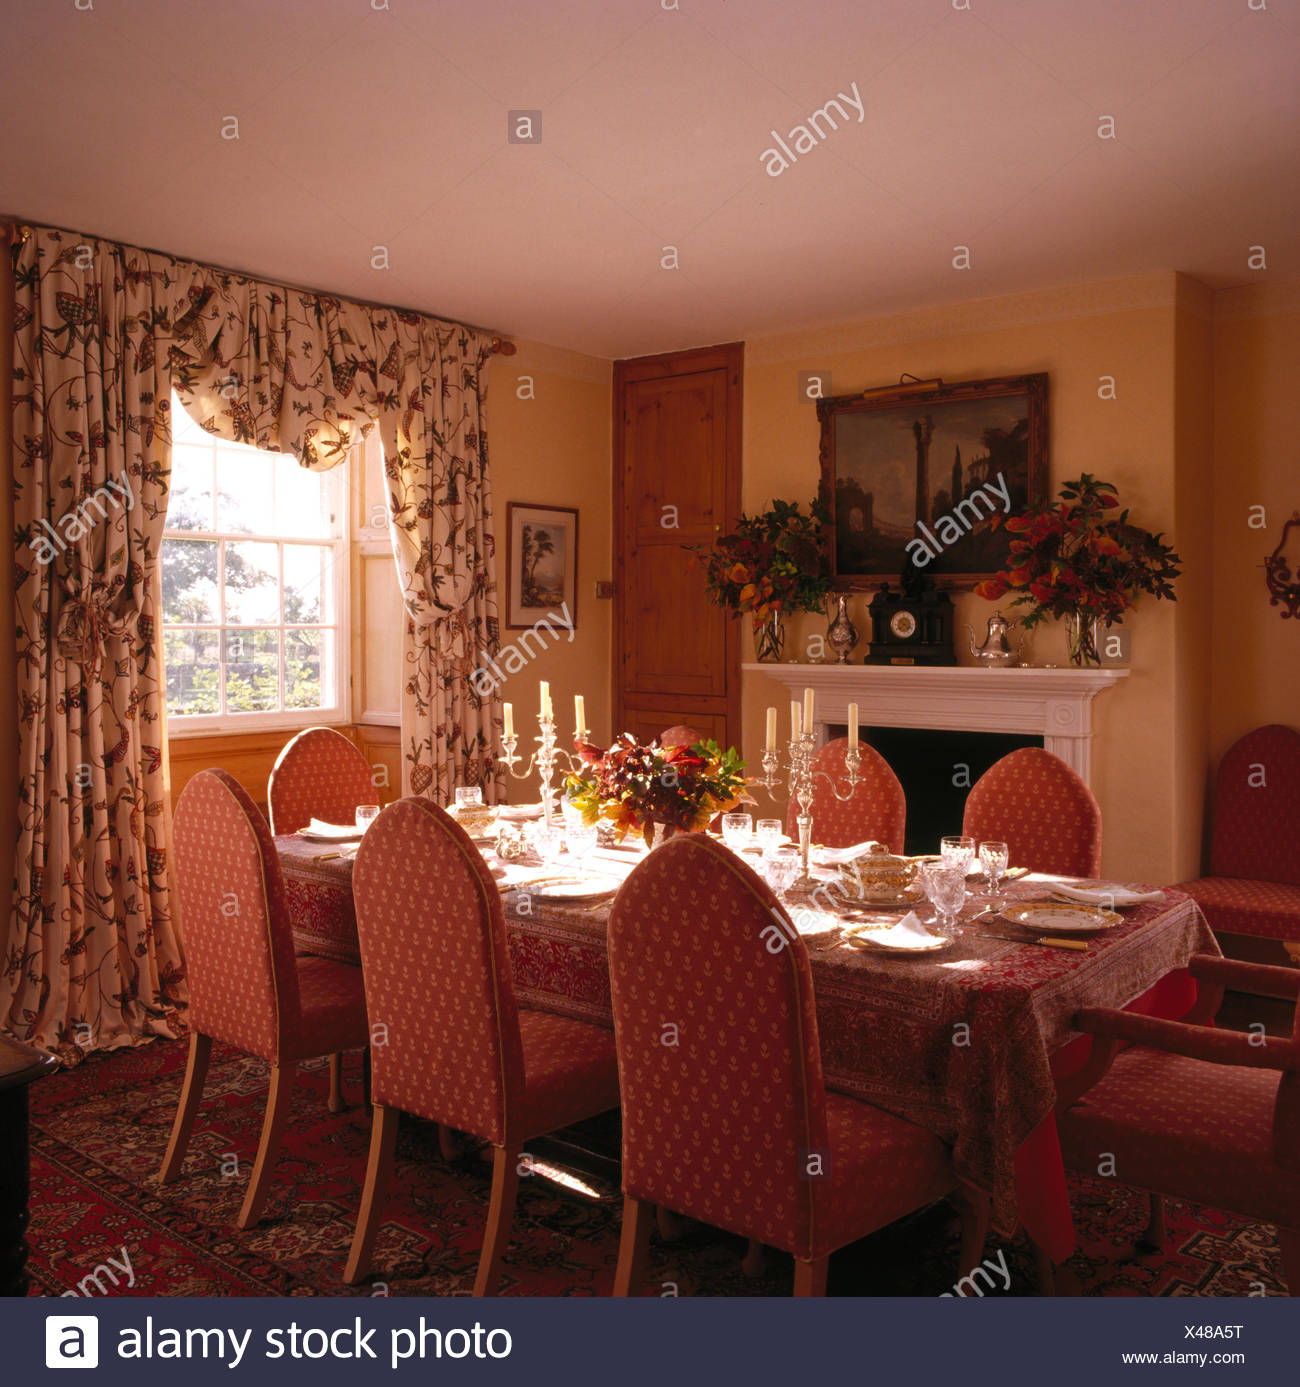 Country Style Dining Room Set Stock Photos & Country Style ...